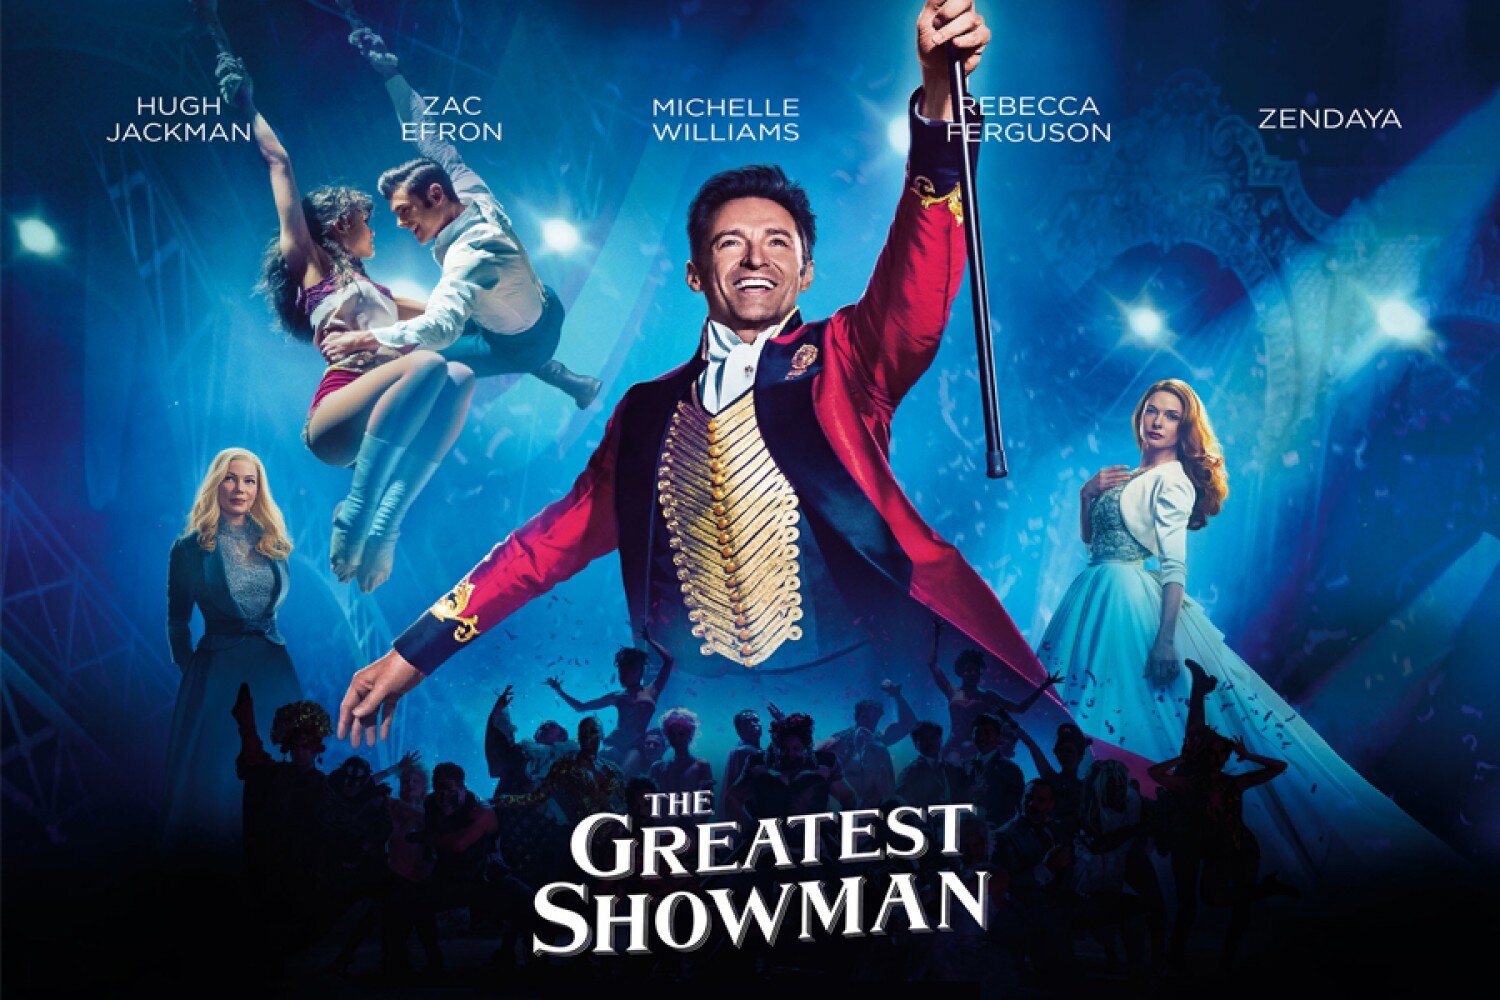 SOFM 2018 900x600 The Greatest Showman.jpg